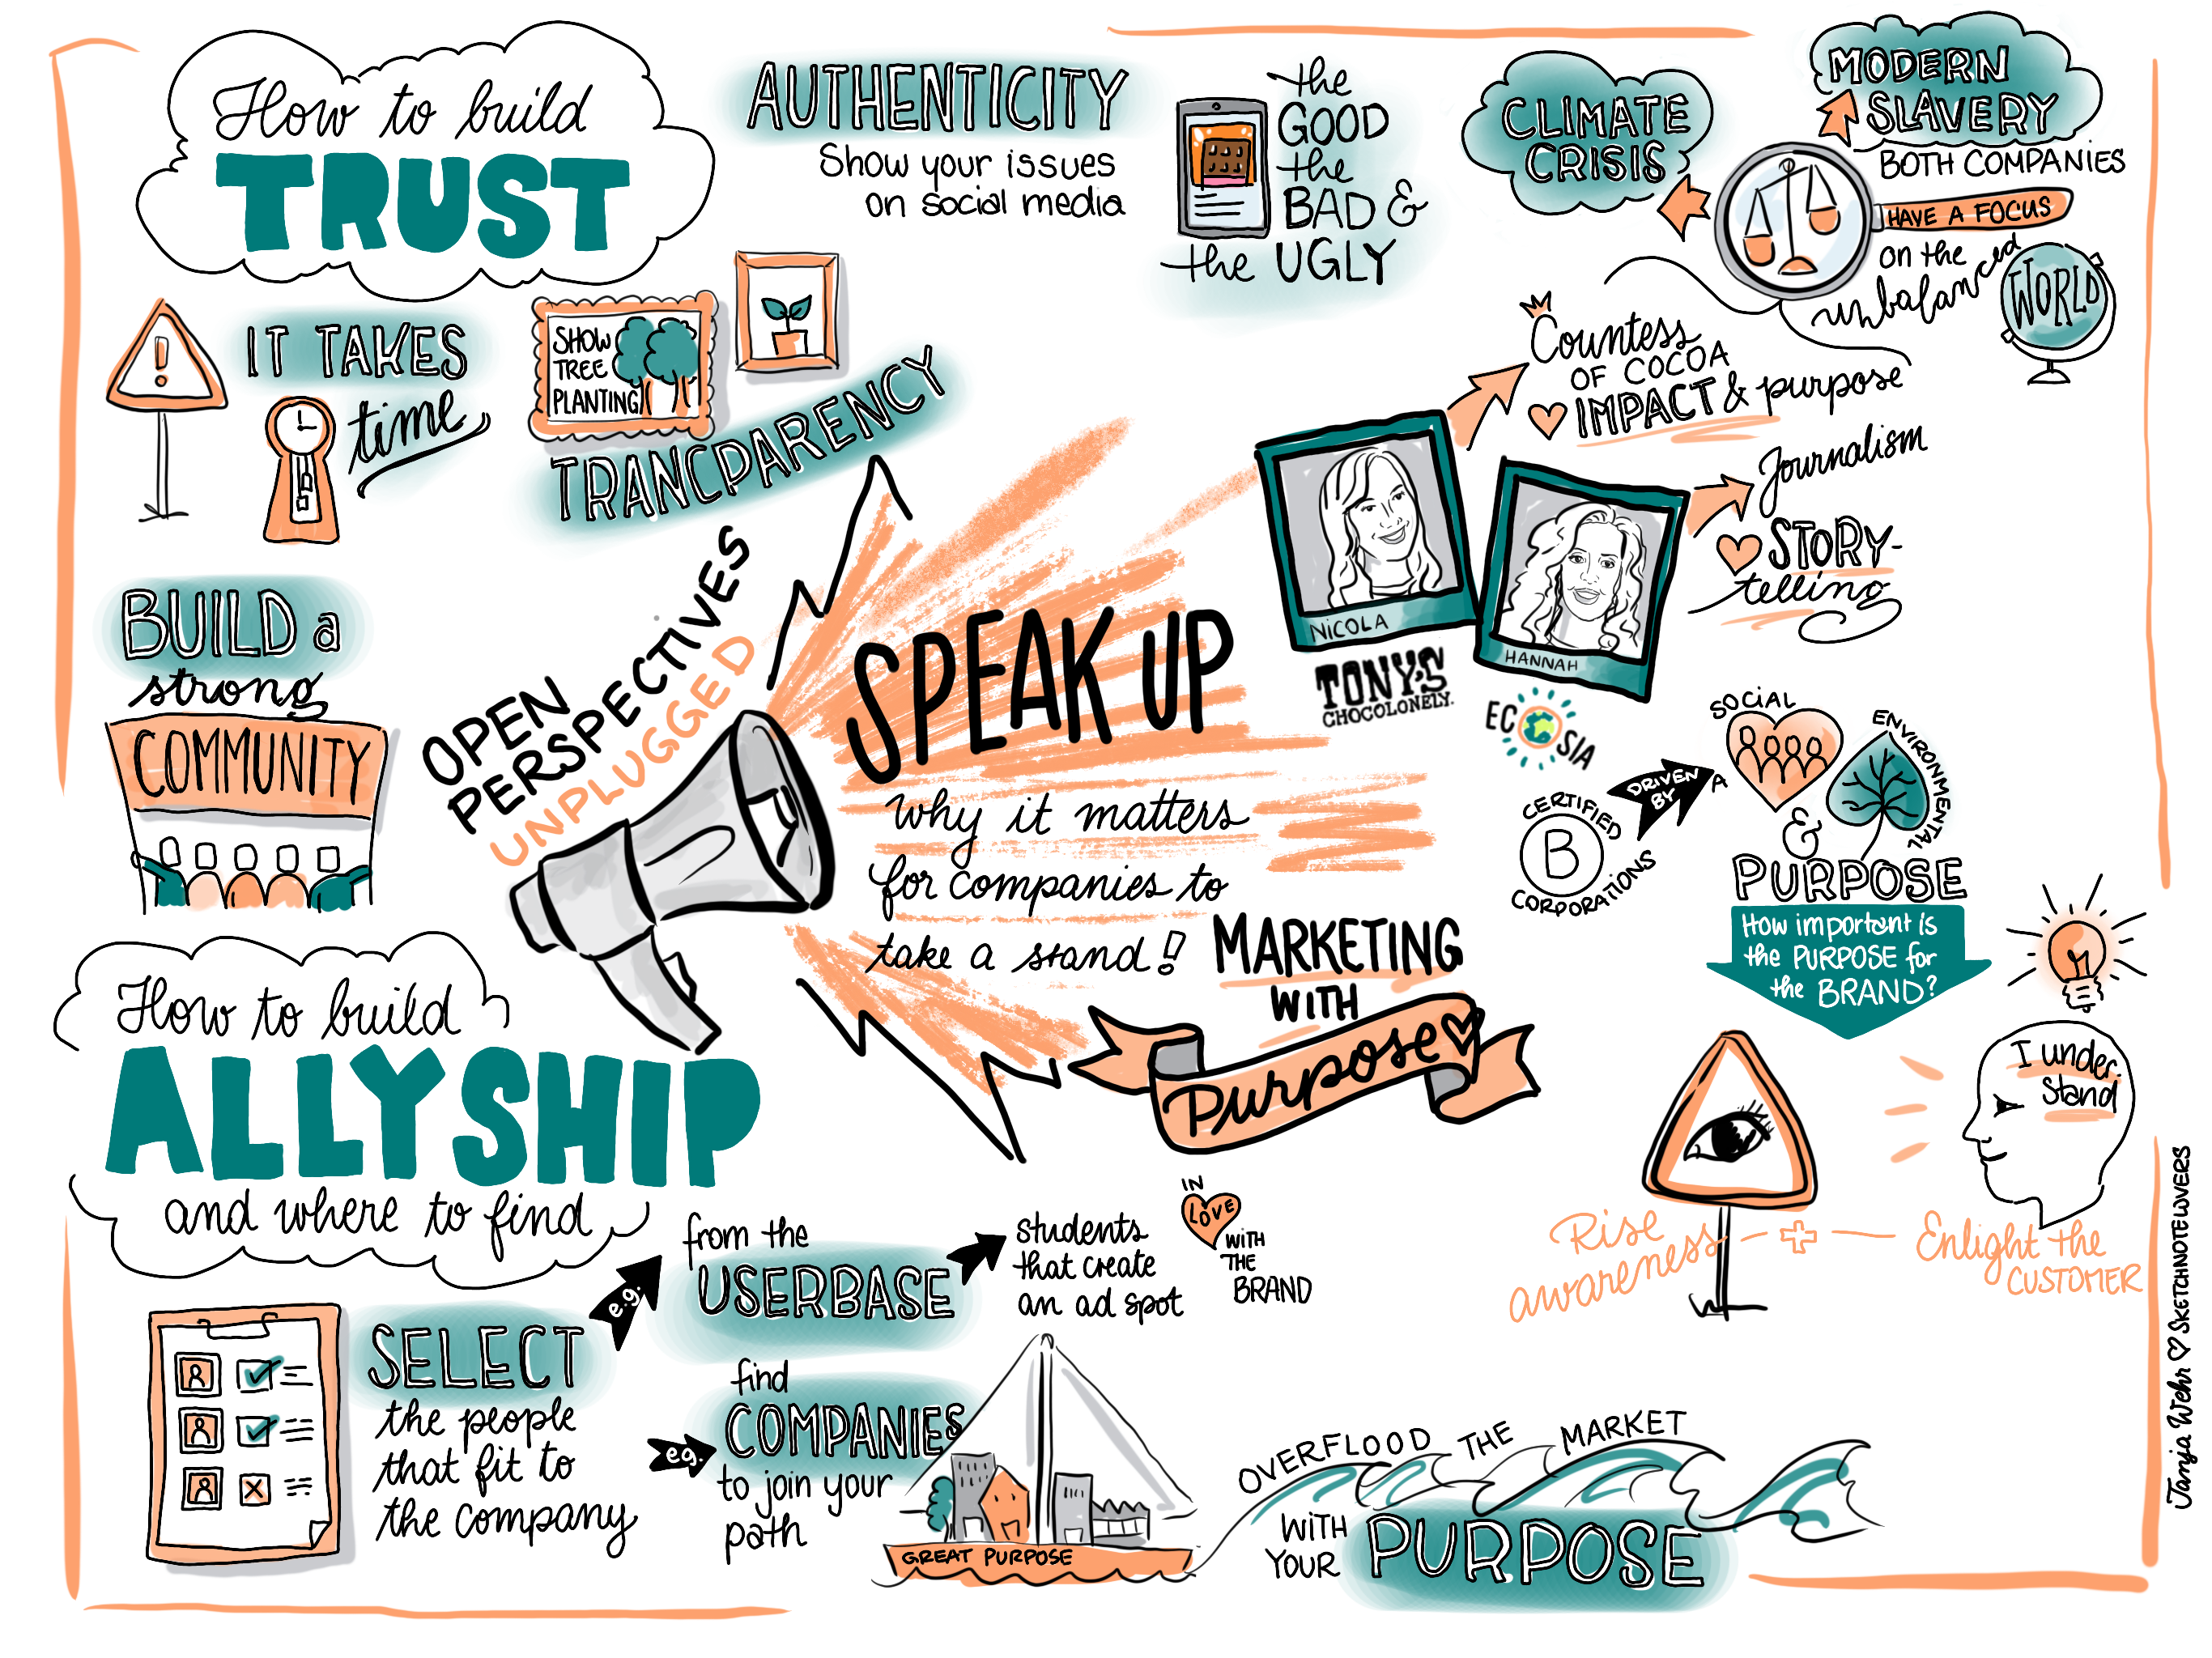 This the graphic recording from the introduction of the session. The image is  a visual summary of what is described in the above paragraph.